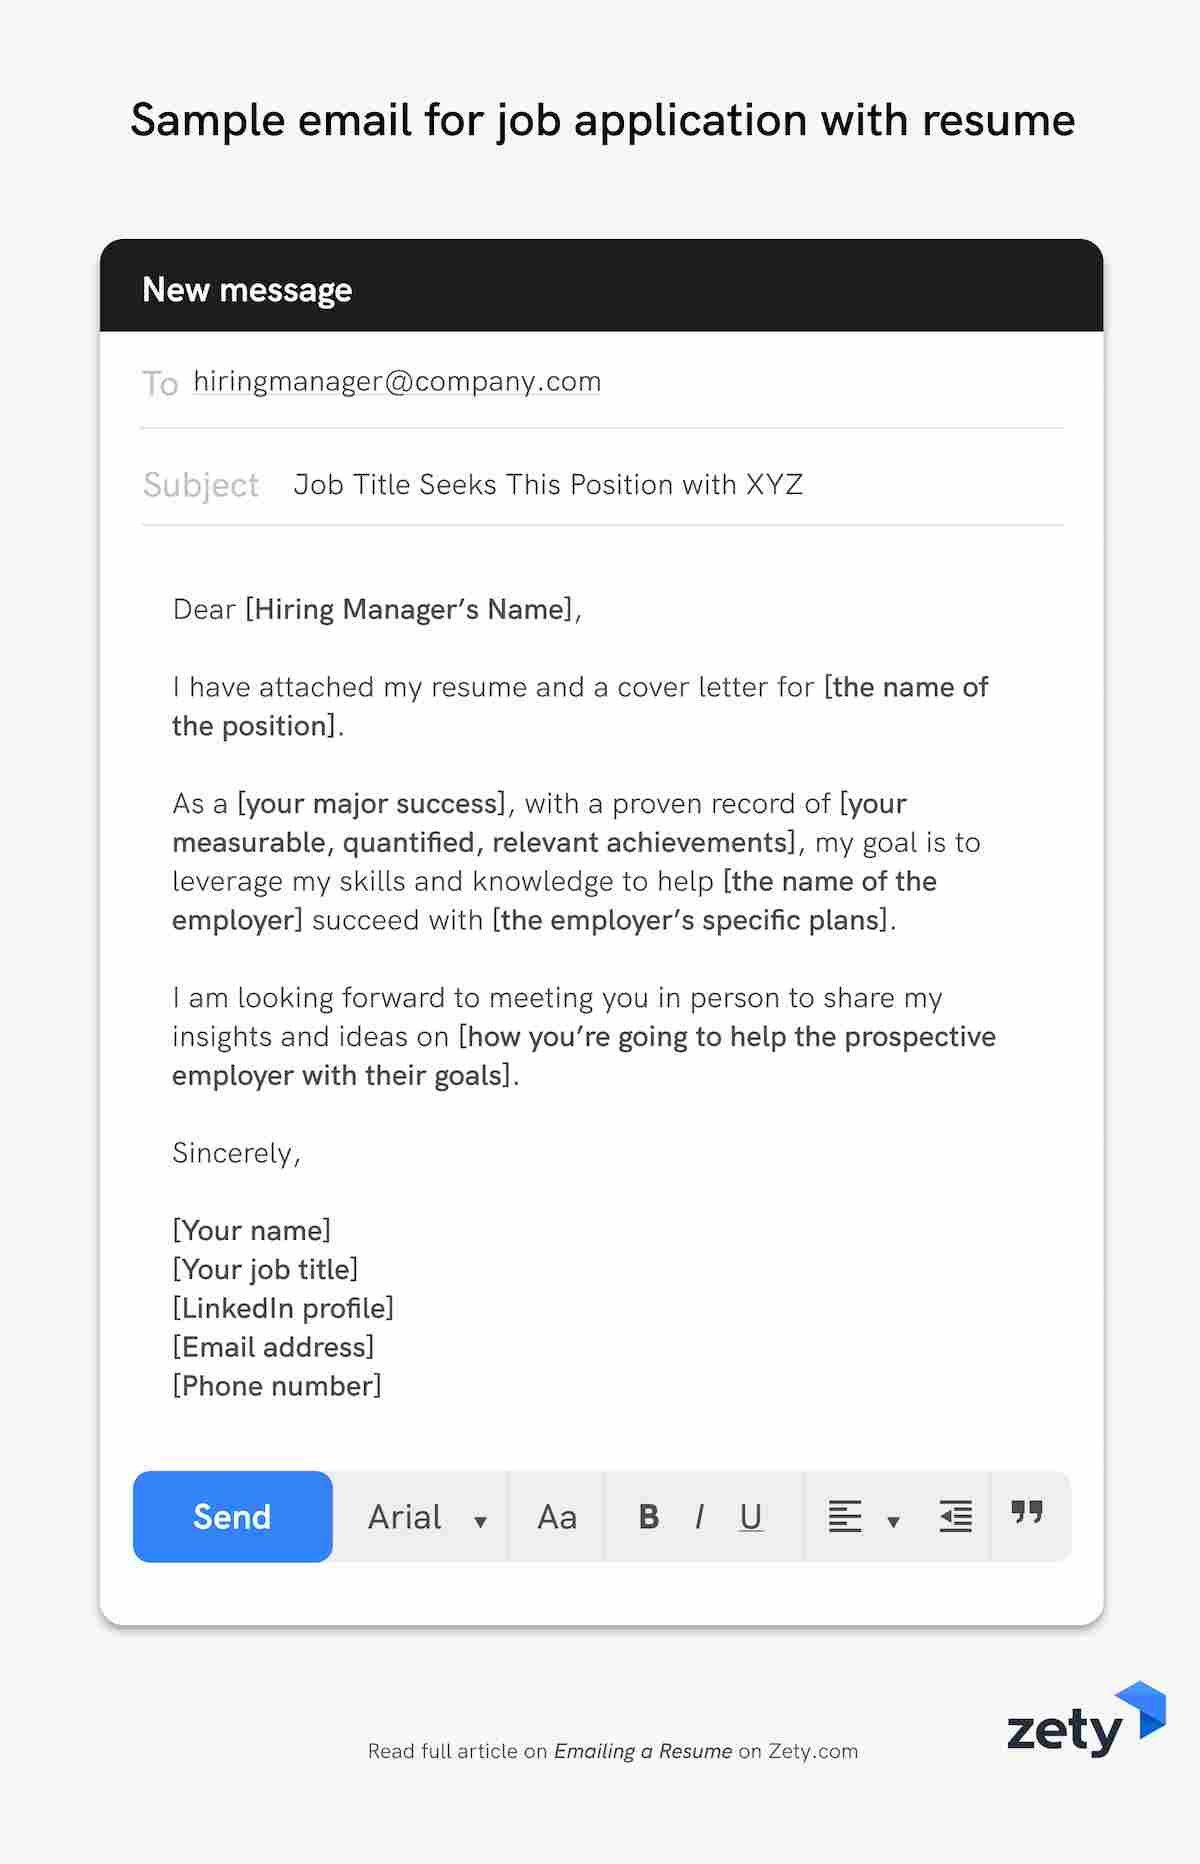 emailing resume job application email samples sample for submitting with skills on Resume Sample Email For Submitting Resume